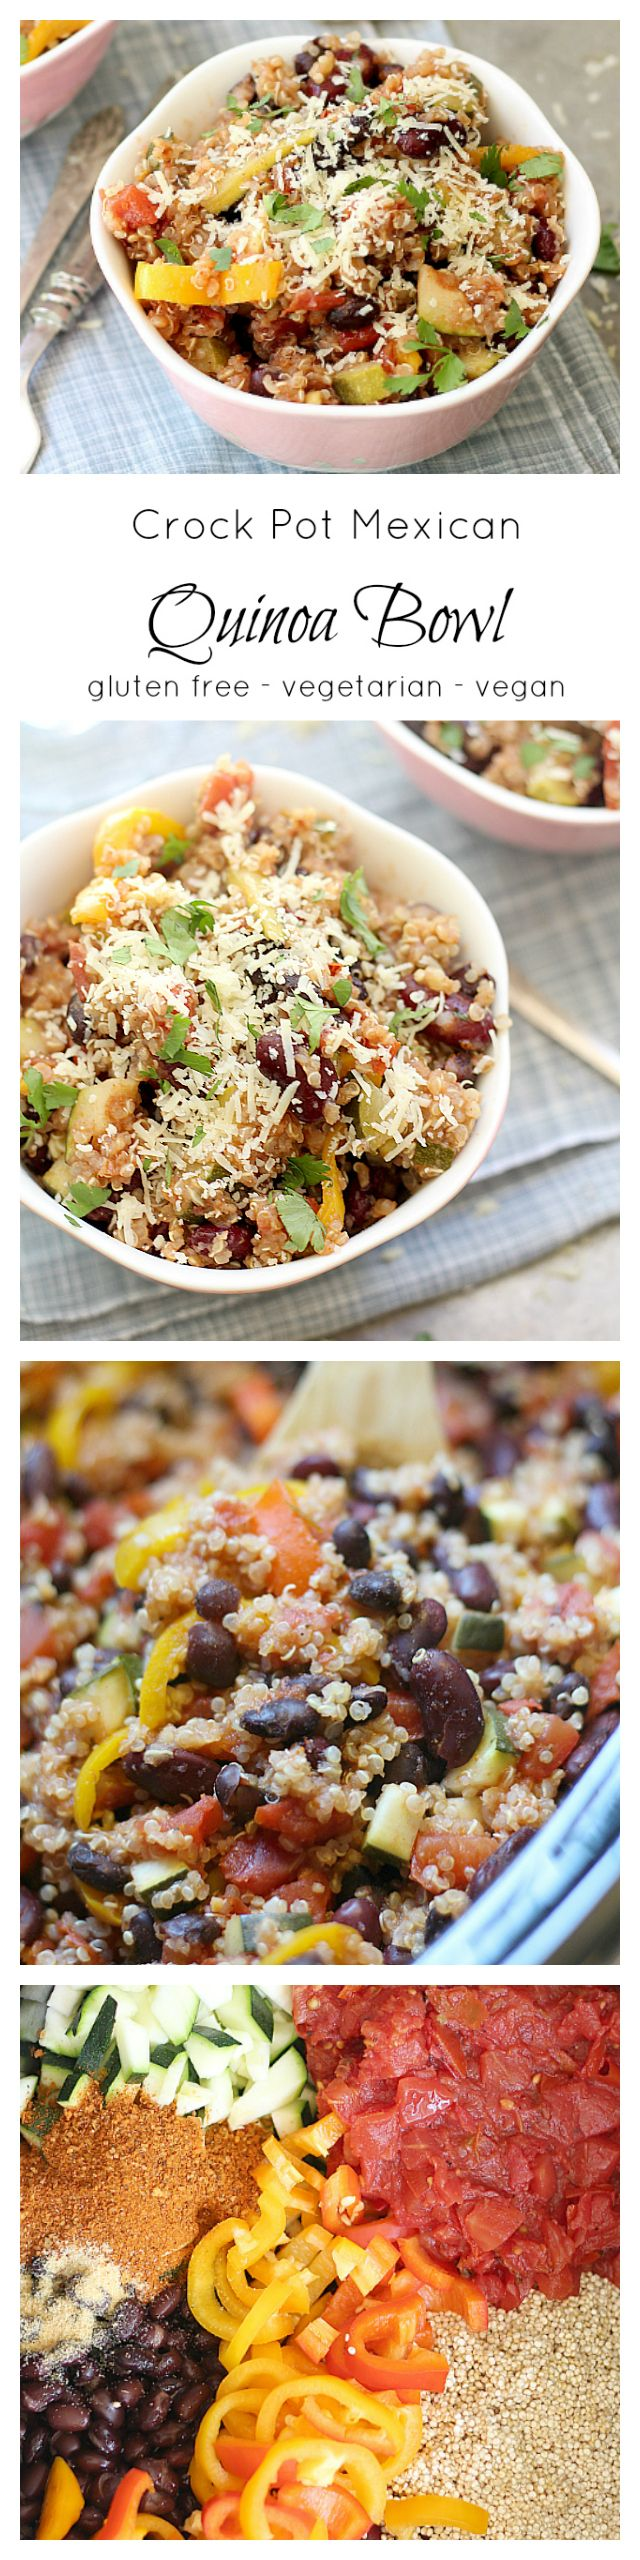 Easy slow cooker quinoa bowl made in the crock pot. Mexican quinoa recipe that is so easy. Toss tomatoes, quinoa, beans, peppers, taco seasoning in the crockpot. Simmer 4-6 hours and ready to serve!